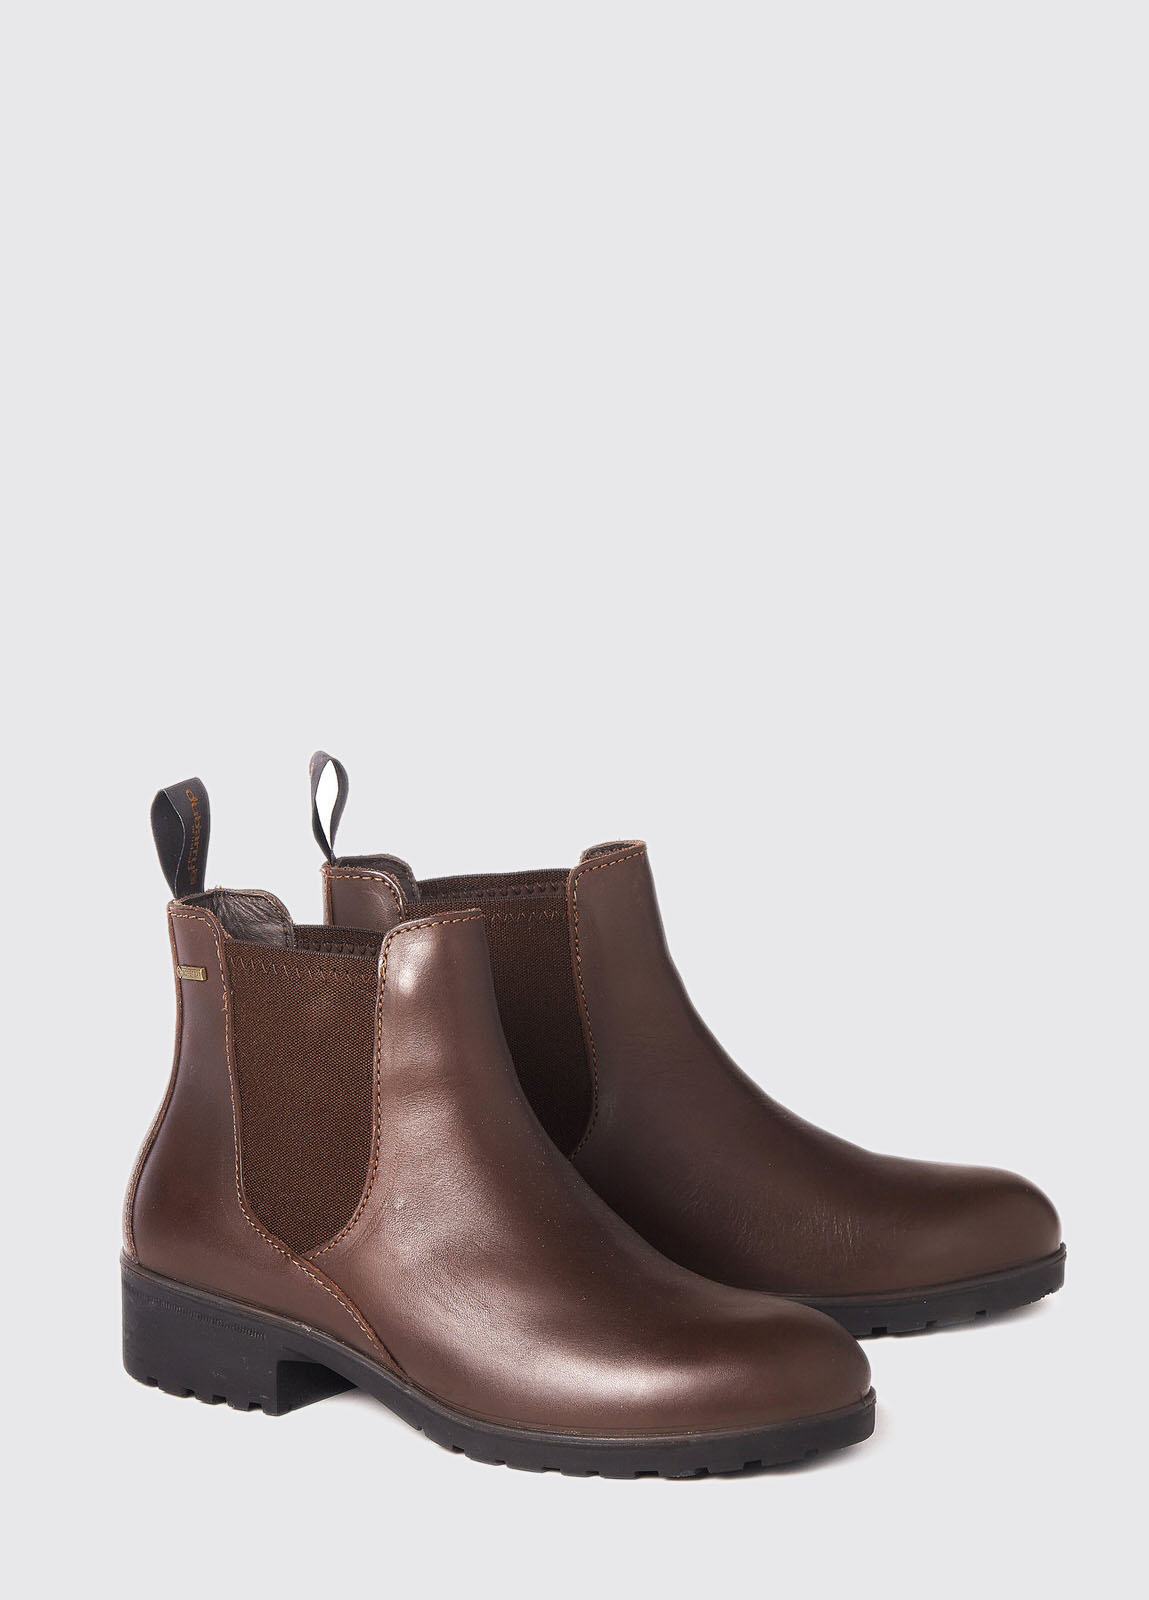 Waterford Country Boot - Mahogany